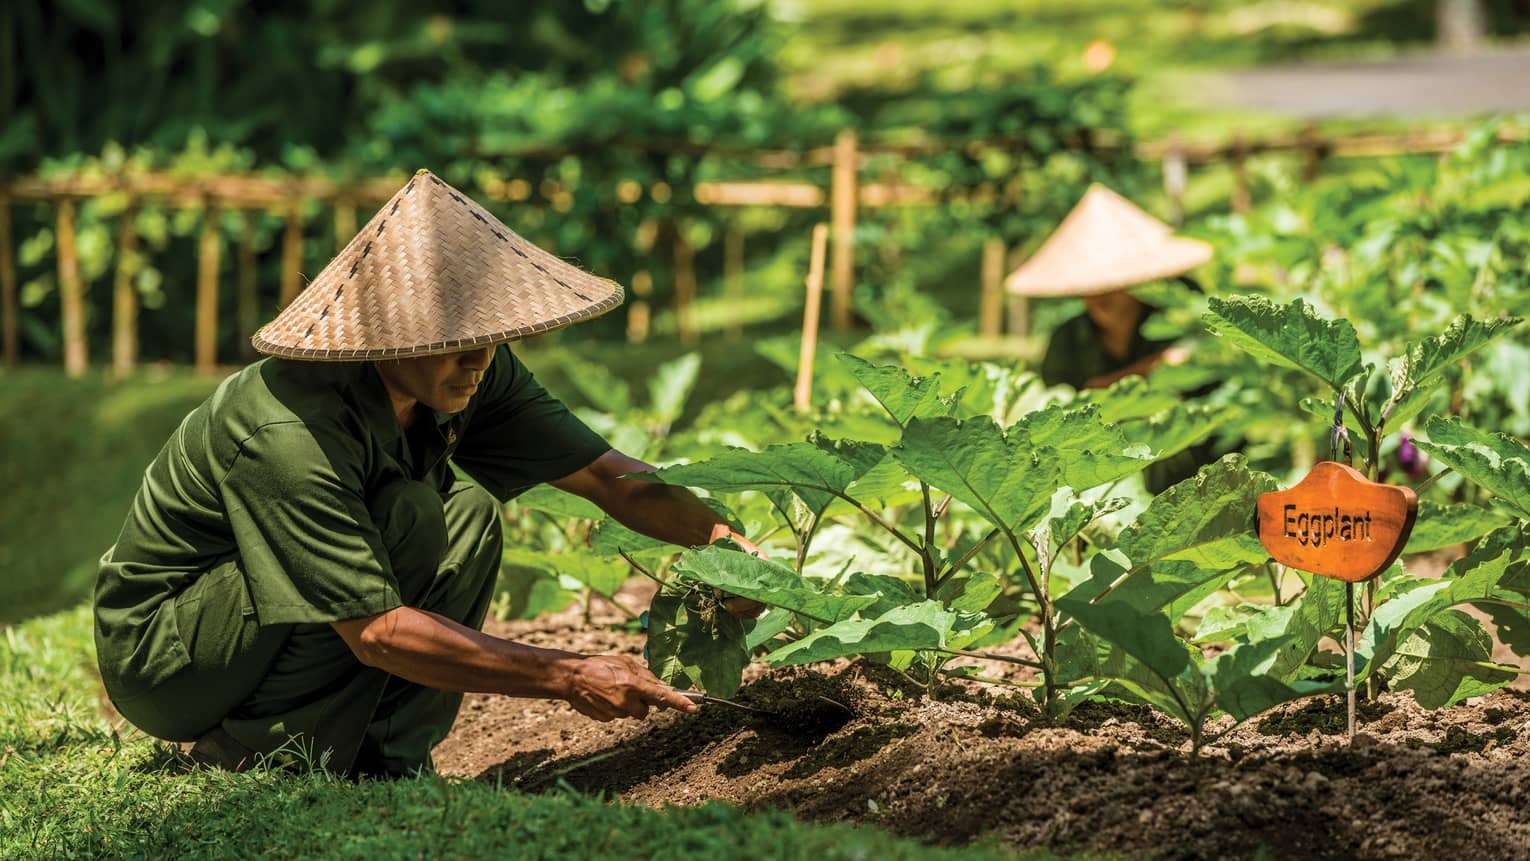 Man in straw farmers hat and casual green uniform kneels over vegetable garden, digs soil under eggplant